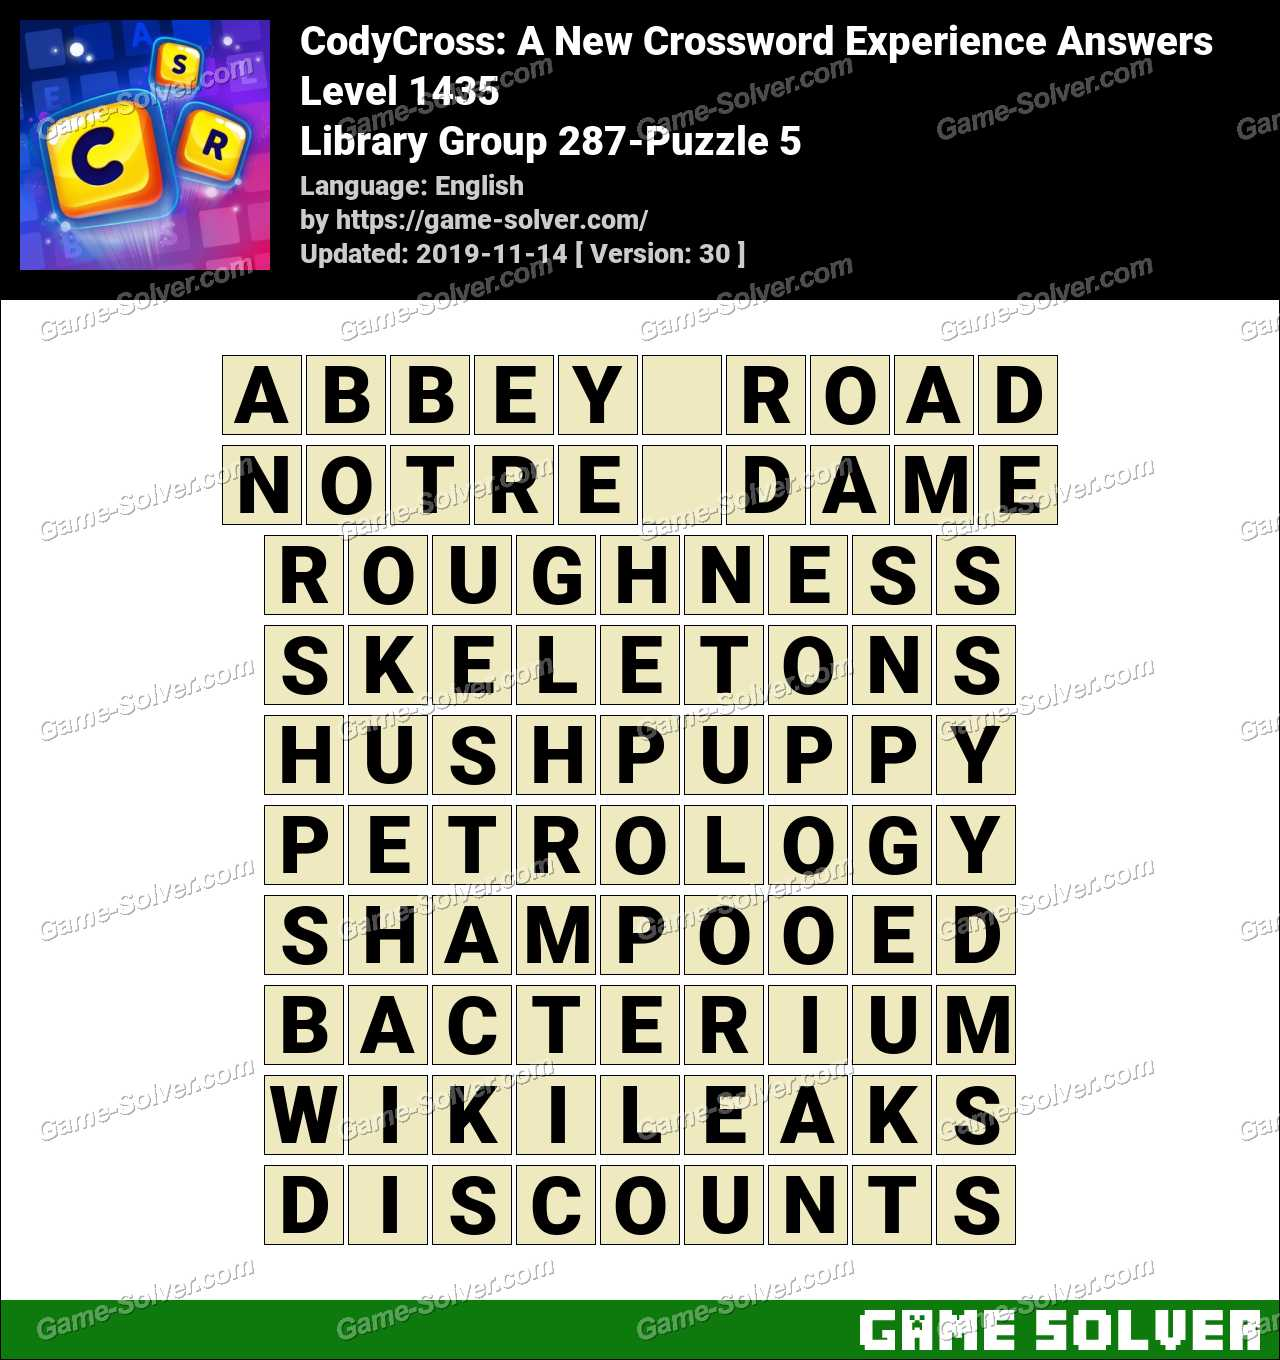 CodyCross Library Group 287-Puzzle 5 Answers